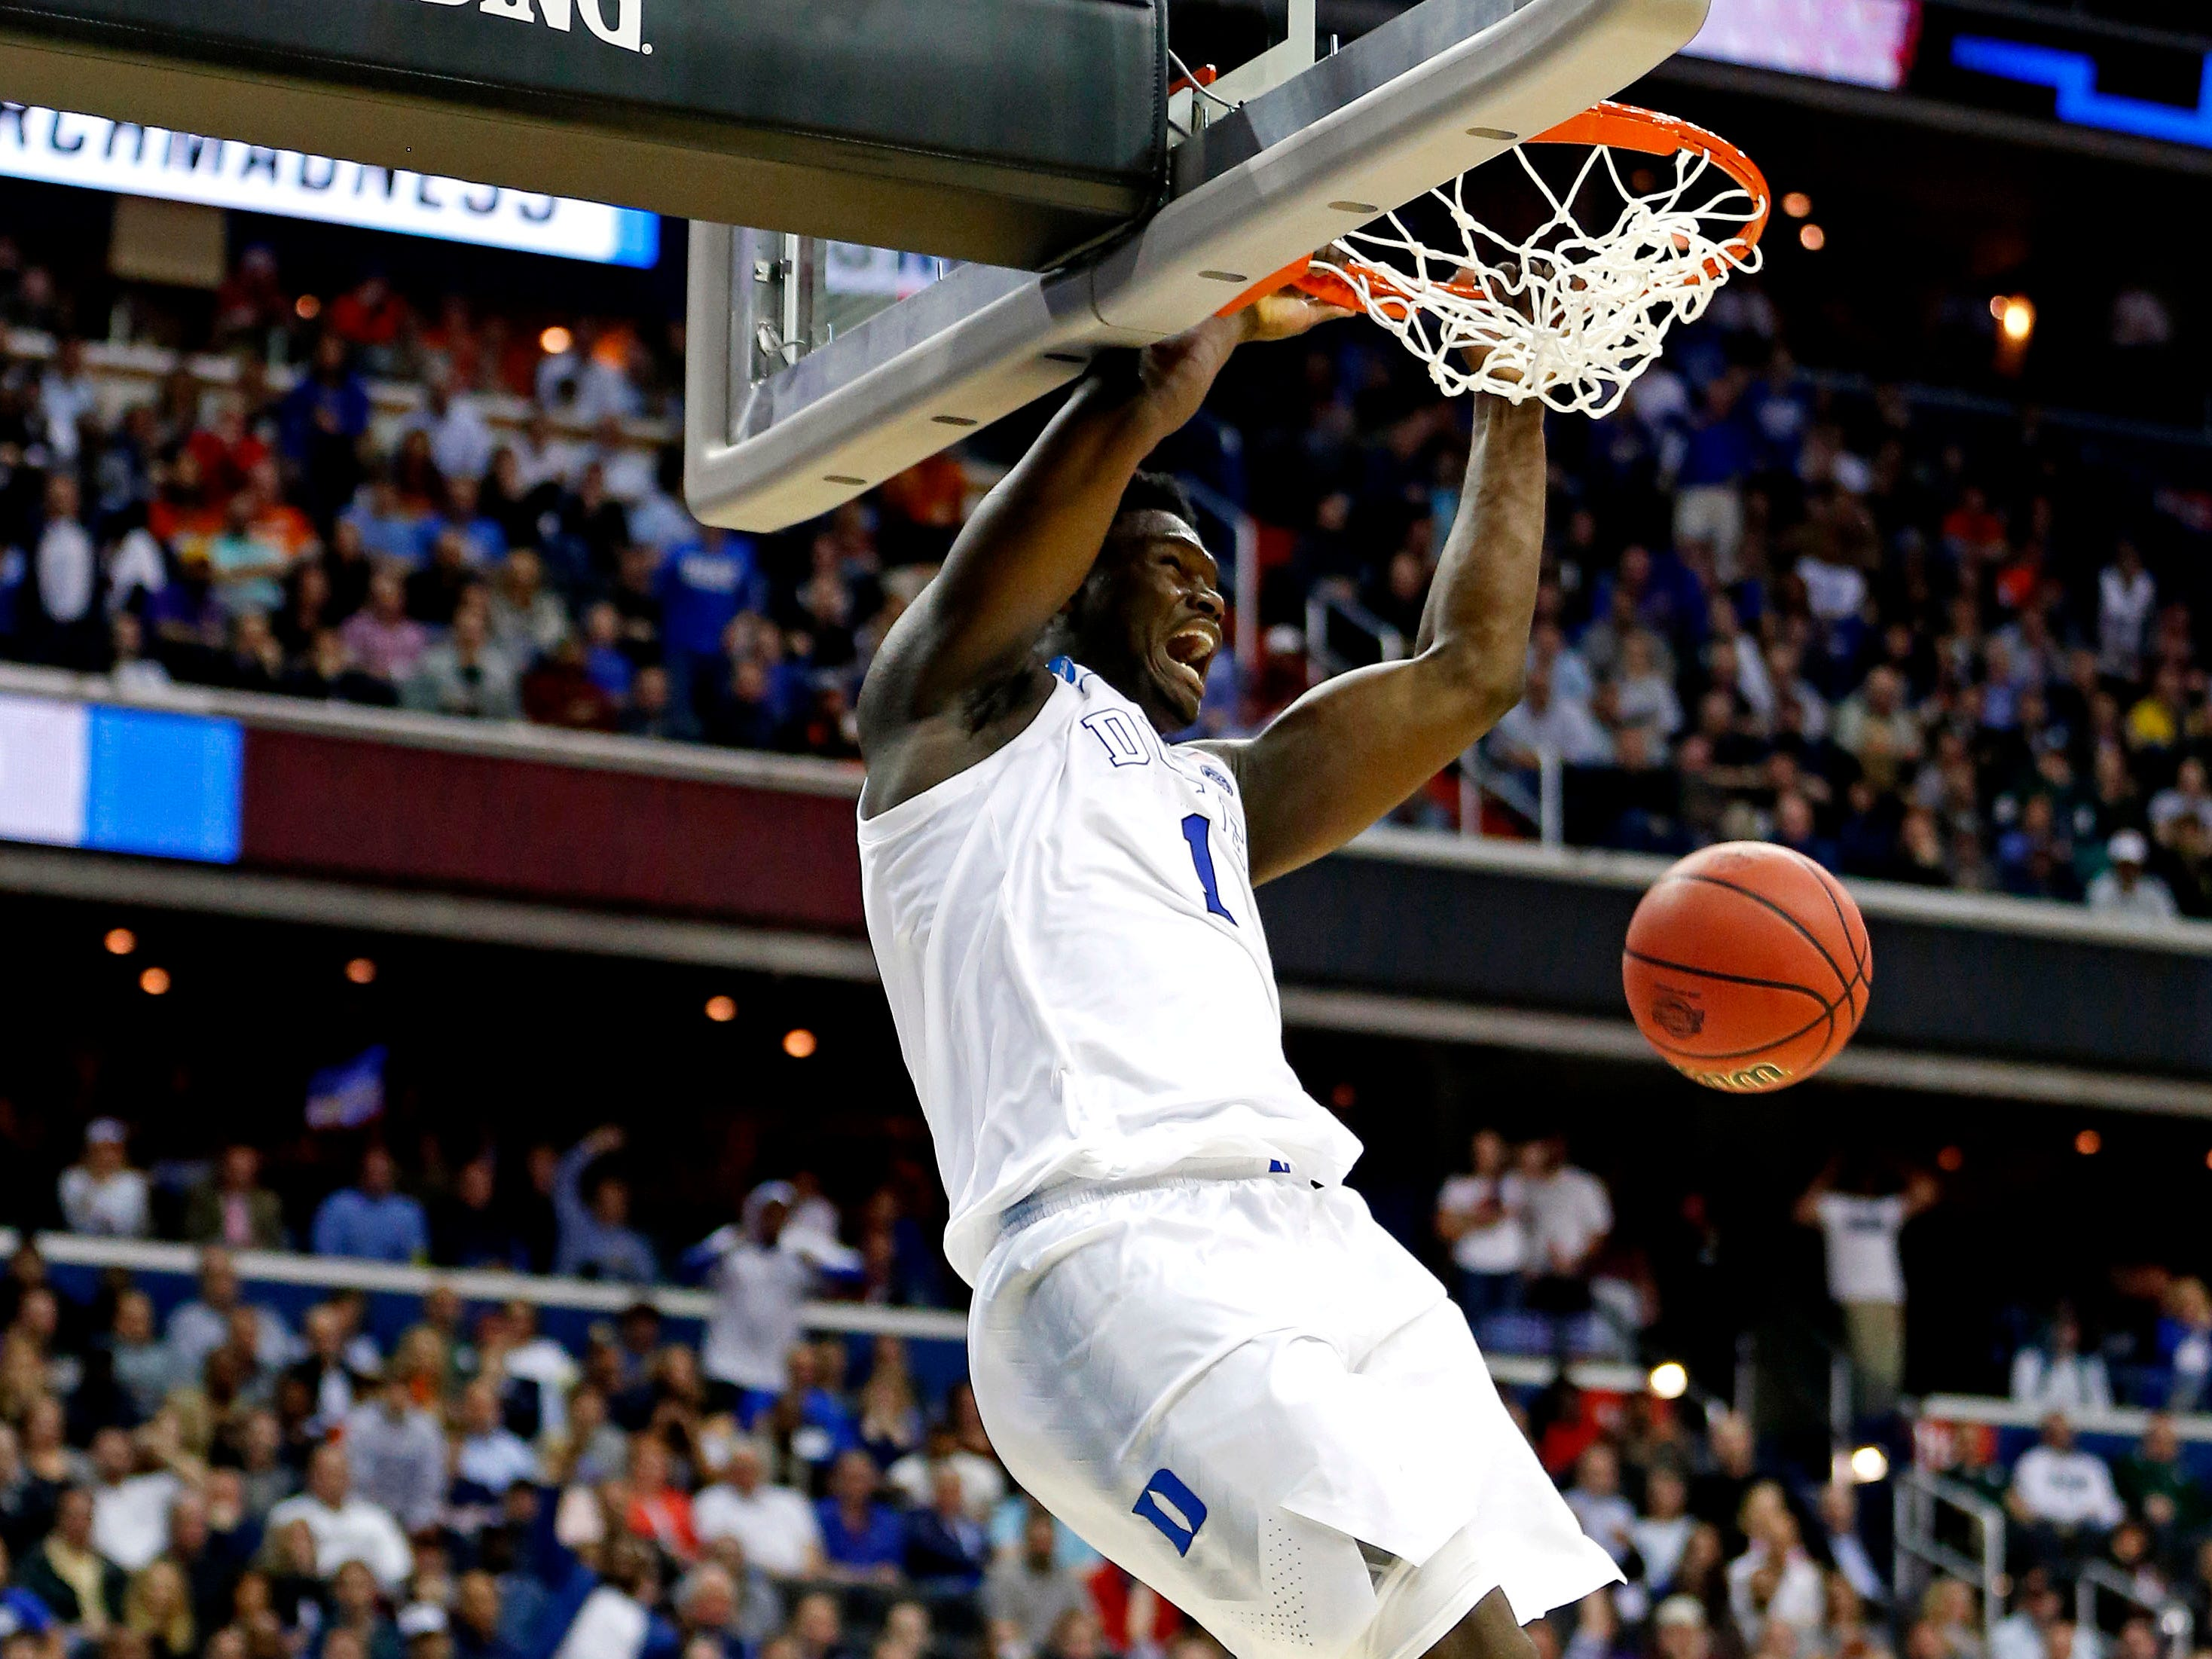 Sweet 16: Duke Blue Devils forward Zion Williamson dunks the ball against the Virginia Tech Hokies during the second half.